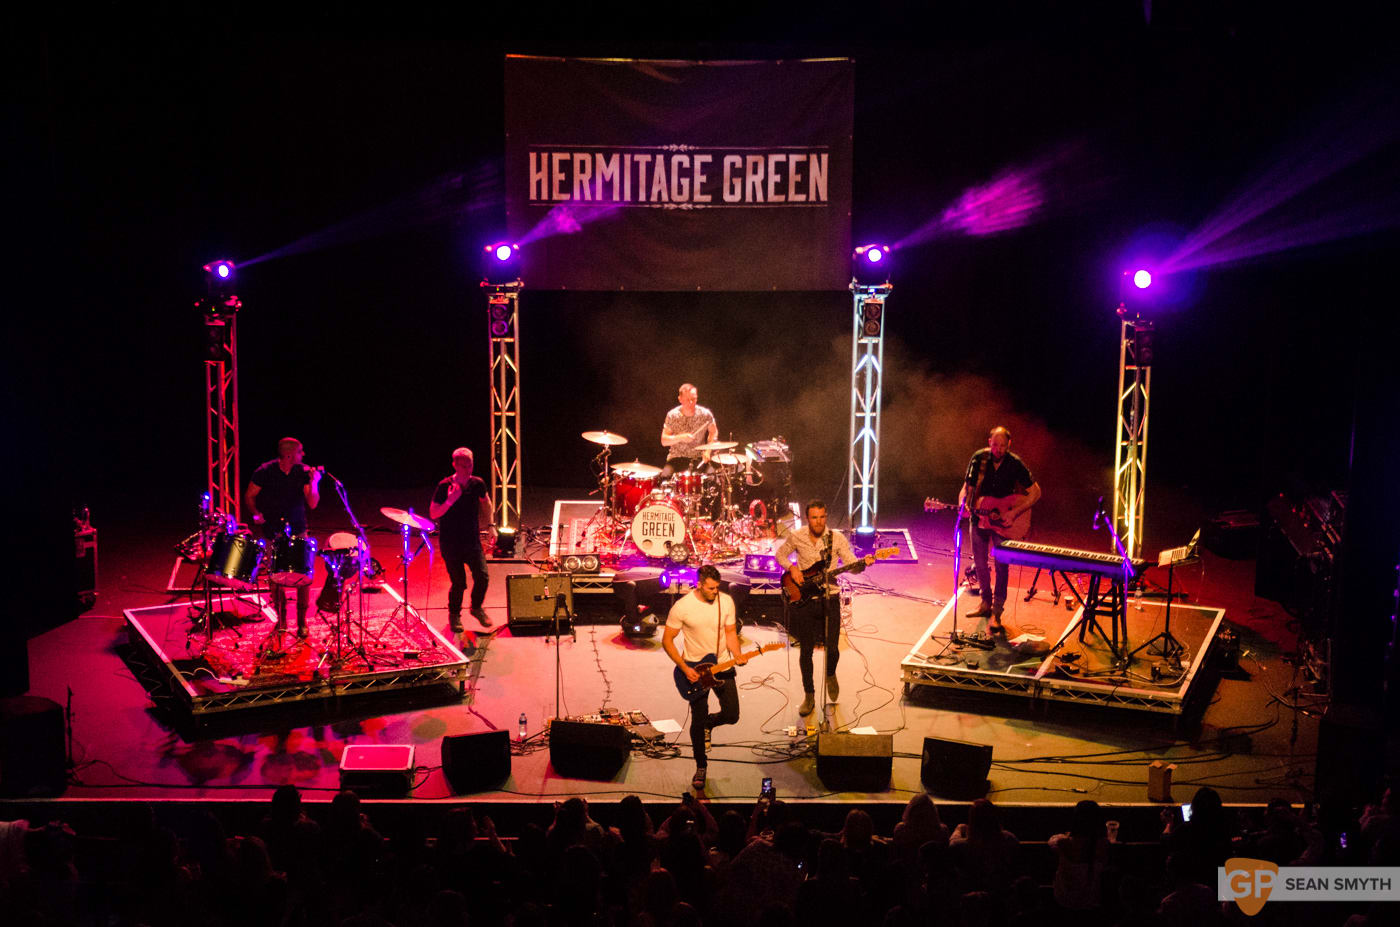 hermitage-green-at-cork-opera-house-by-sean-smyth-8-3-16-32-of-45